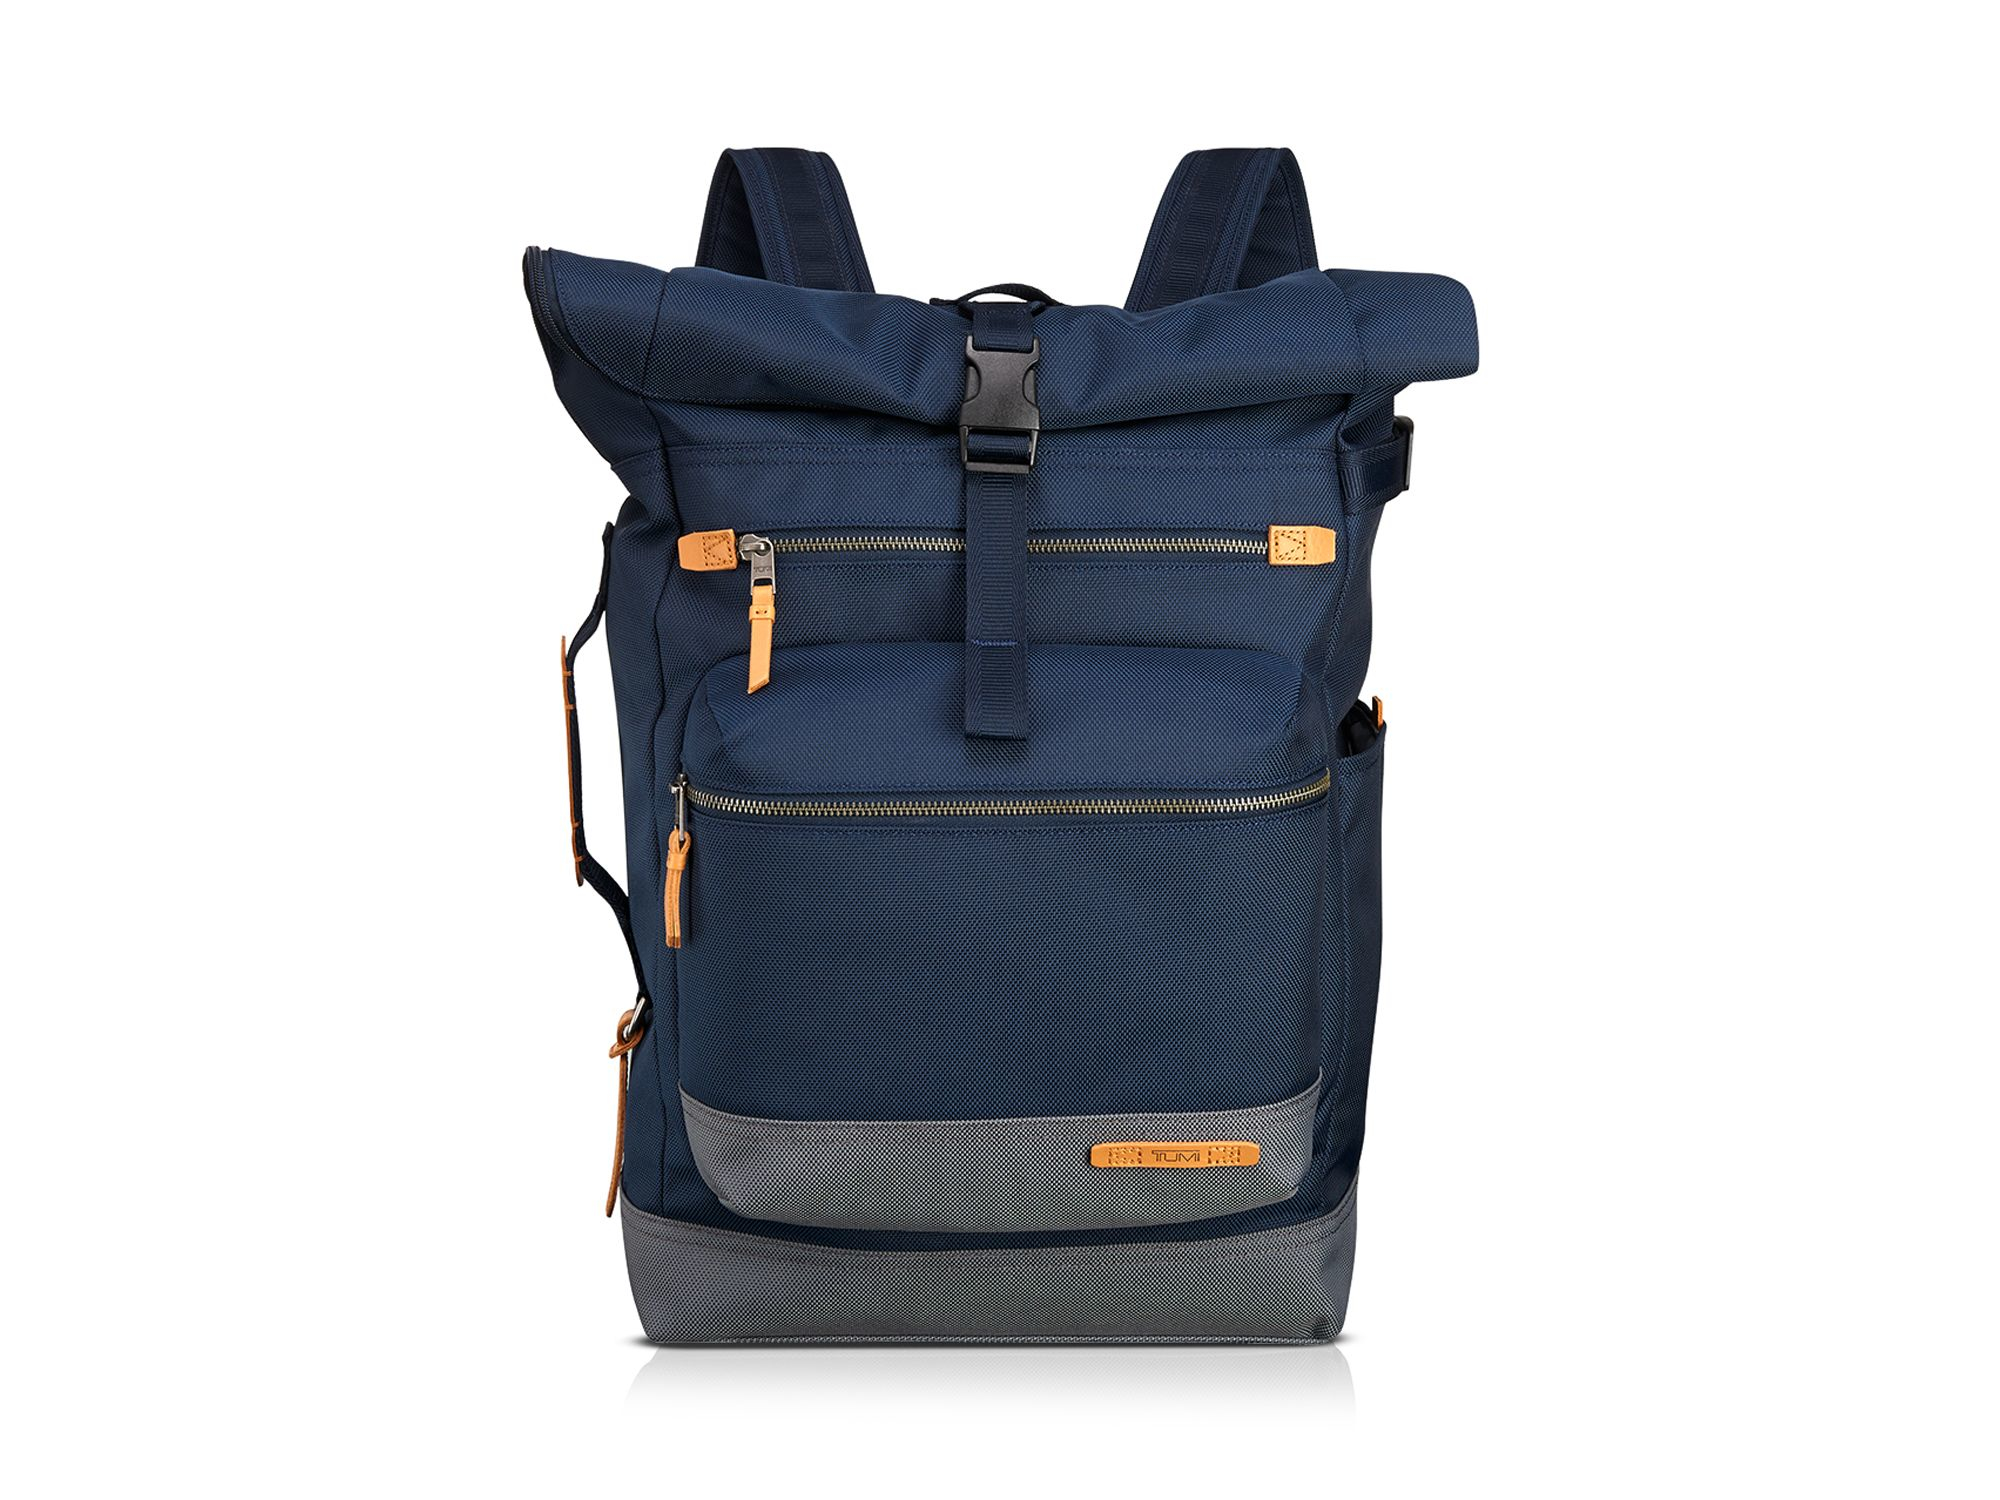 Lyst - Tumi Dalston Ridley Roll Top Backpack in Blue for Men 6aaa8fc857